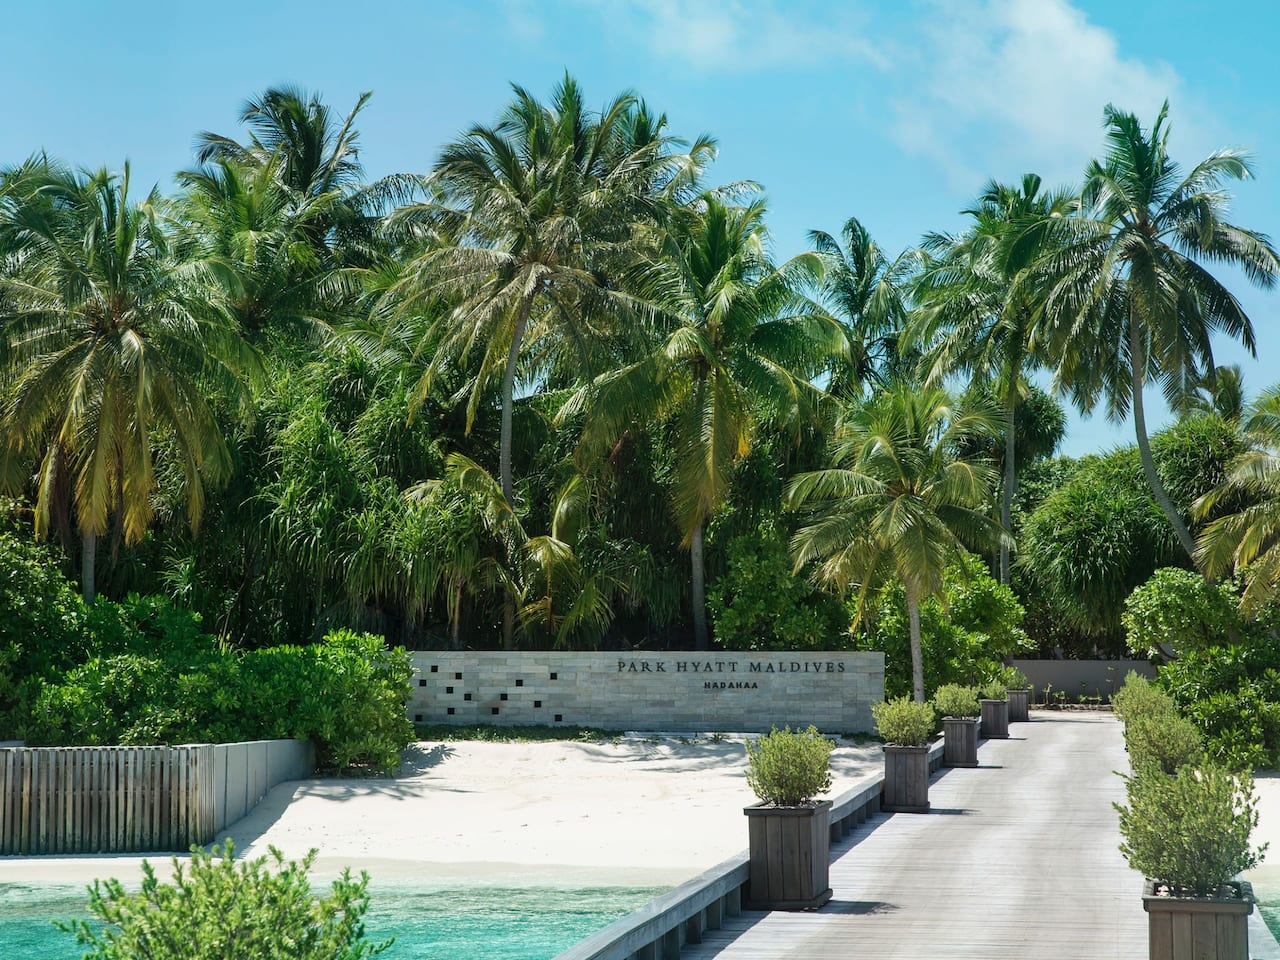 Best luxury Maldives resort Park Hyatt Maldives